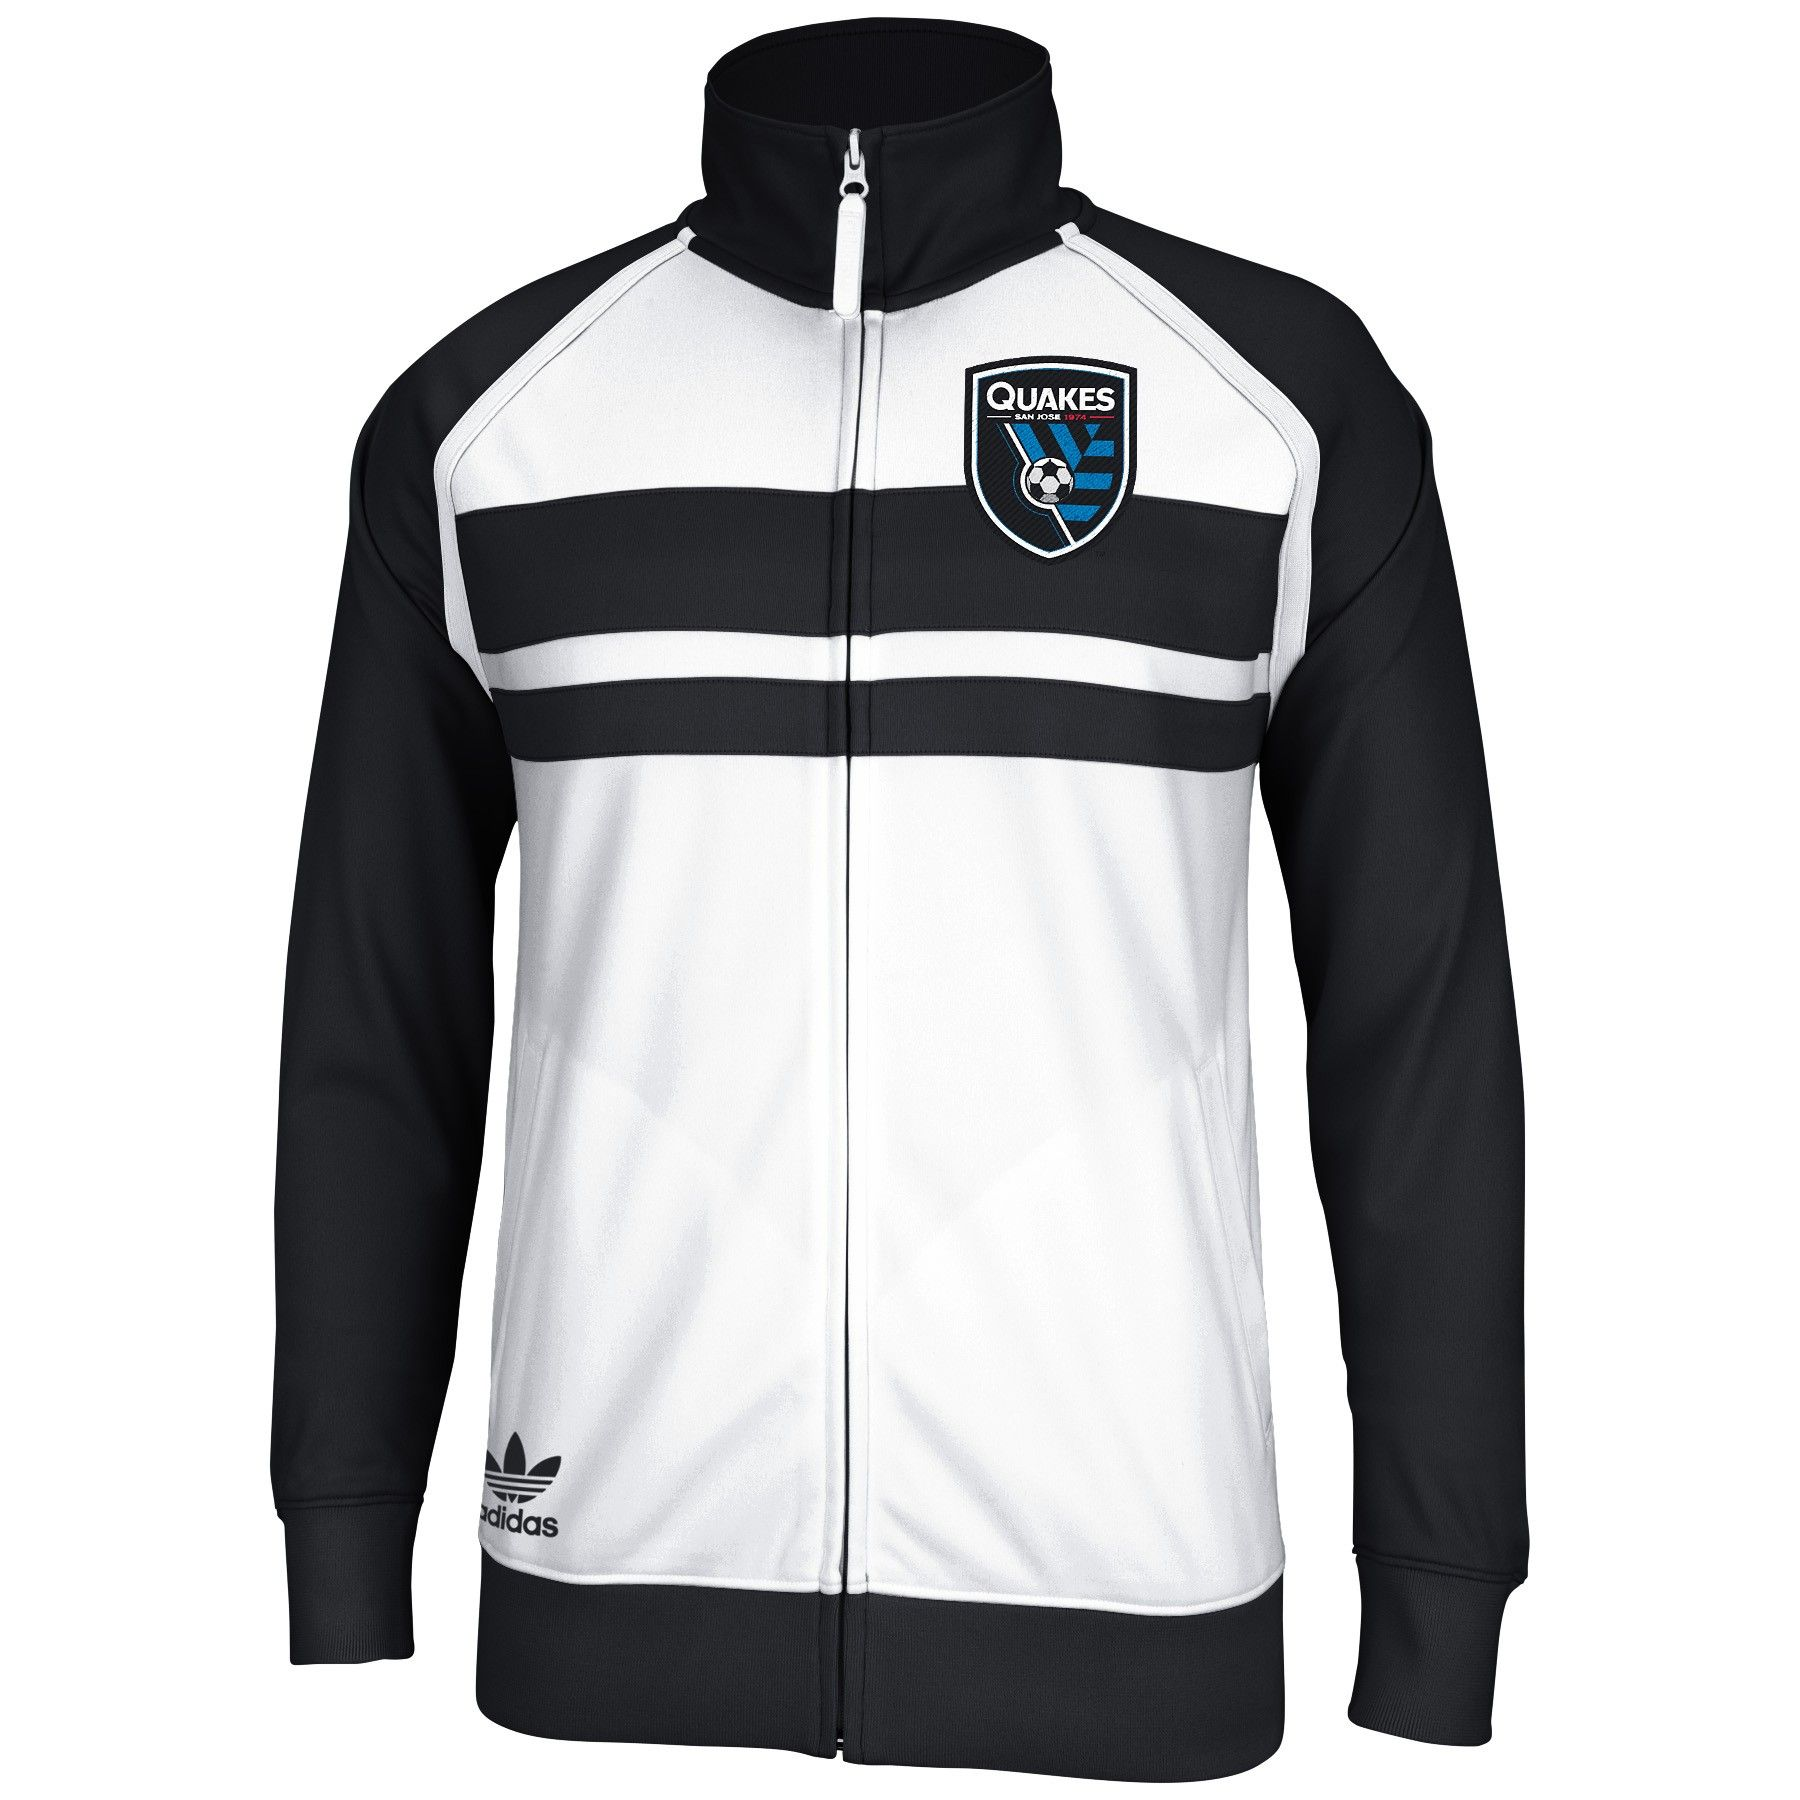 5694e66f7c4 The New Earthquakes White Track Jacket